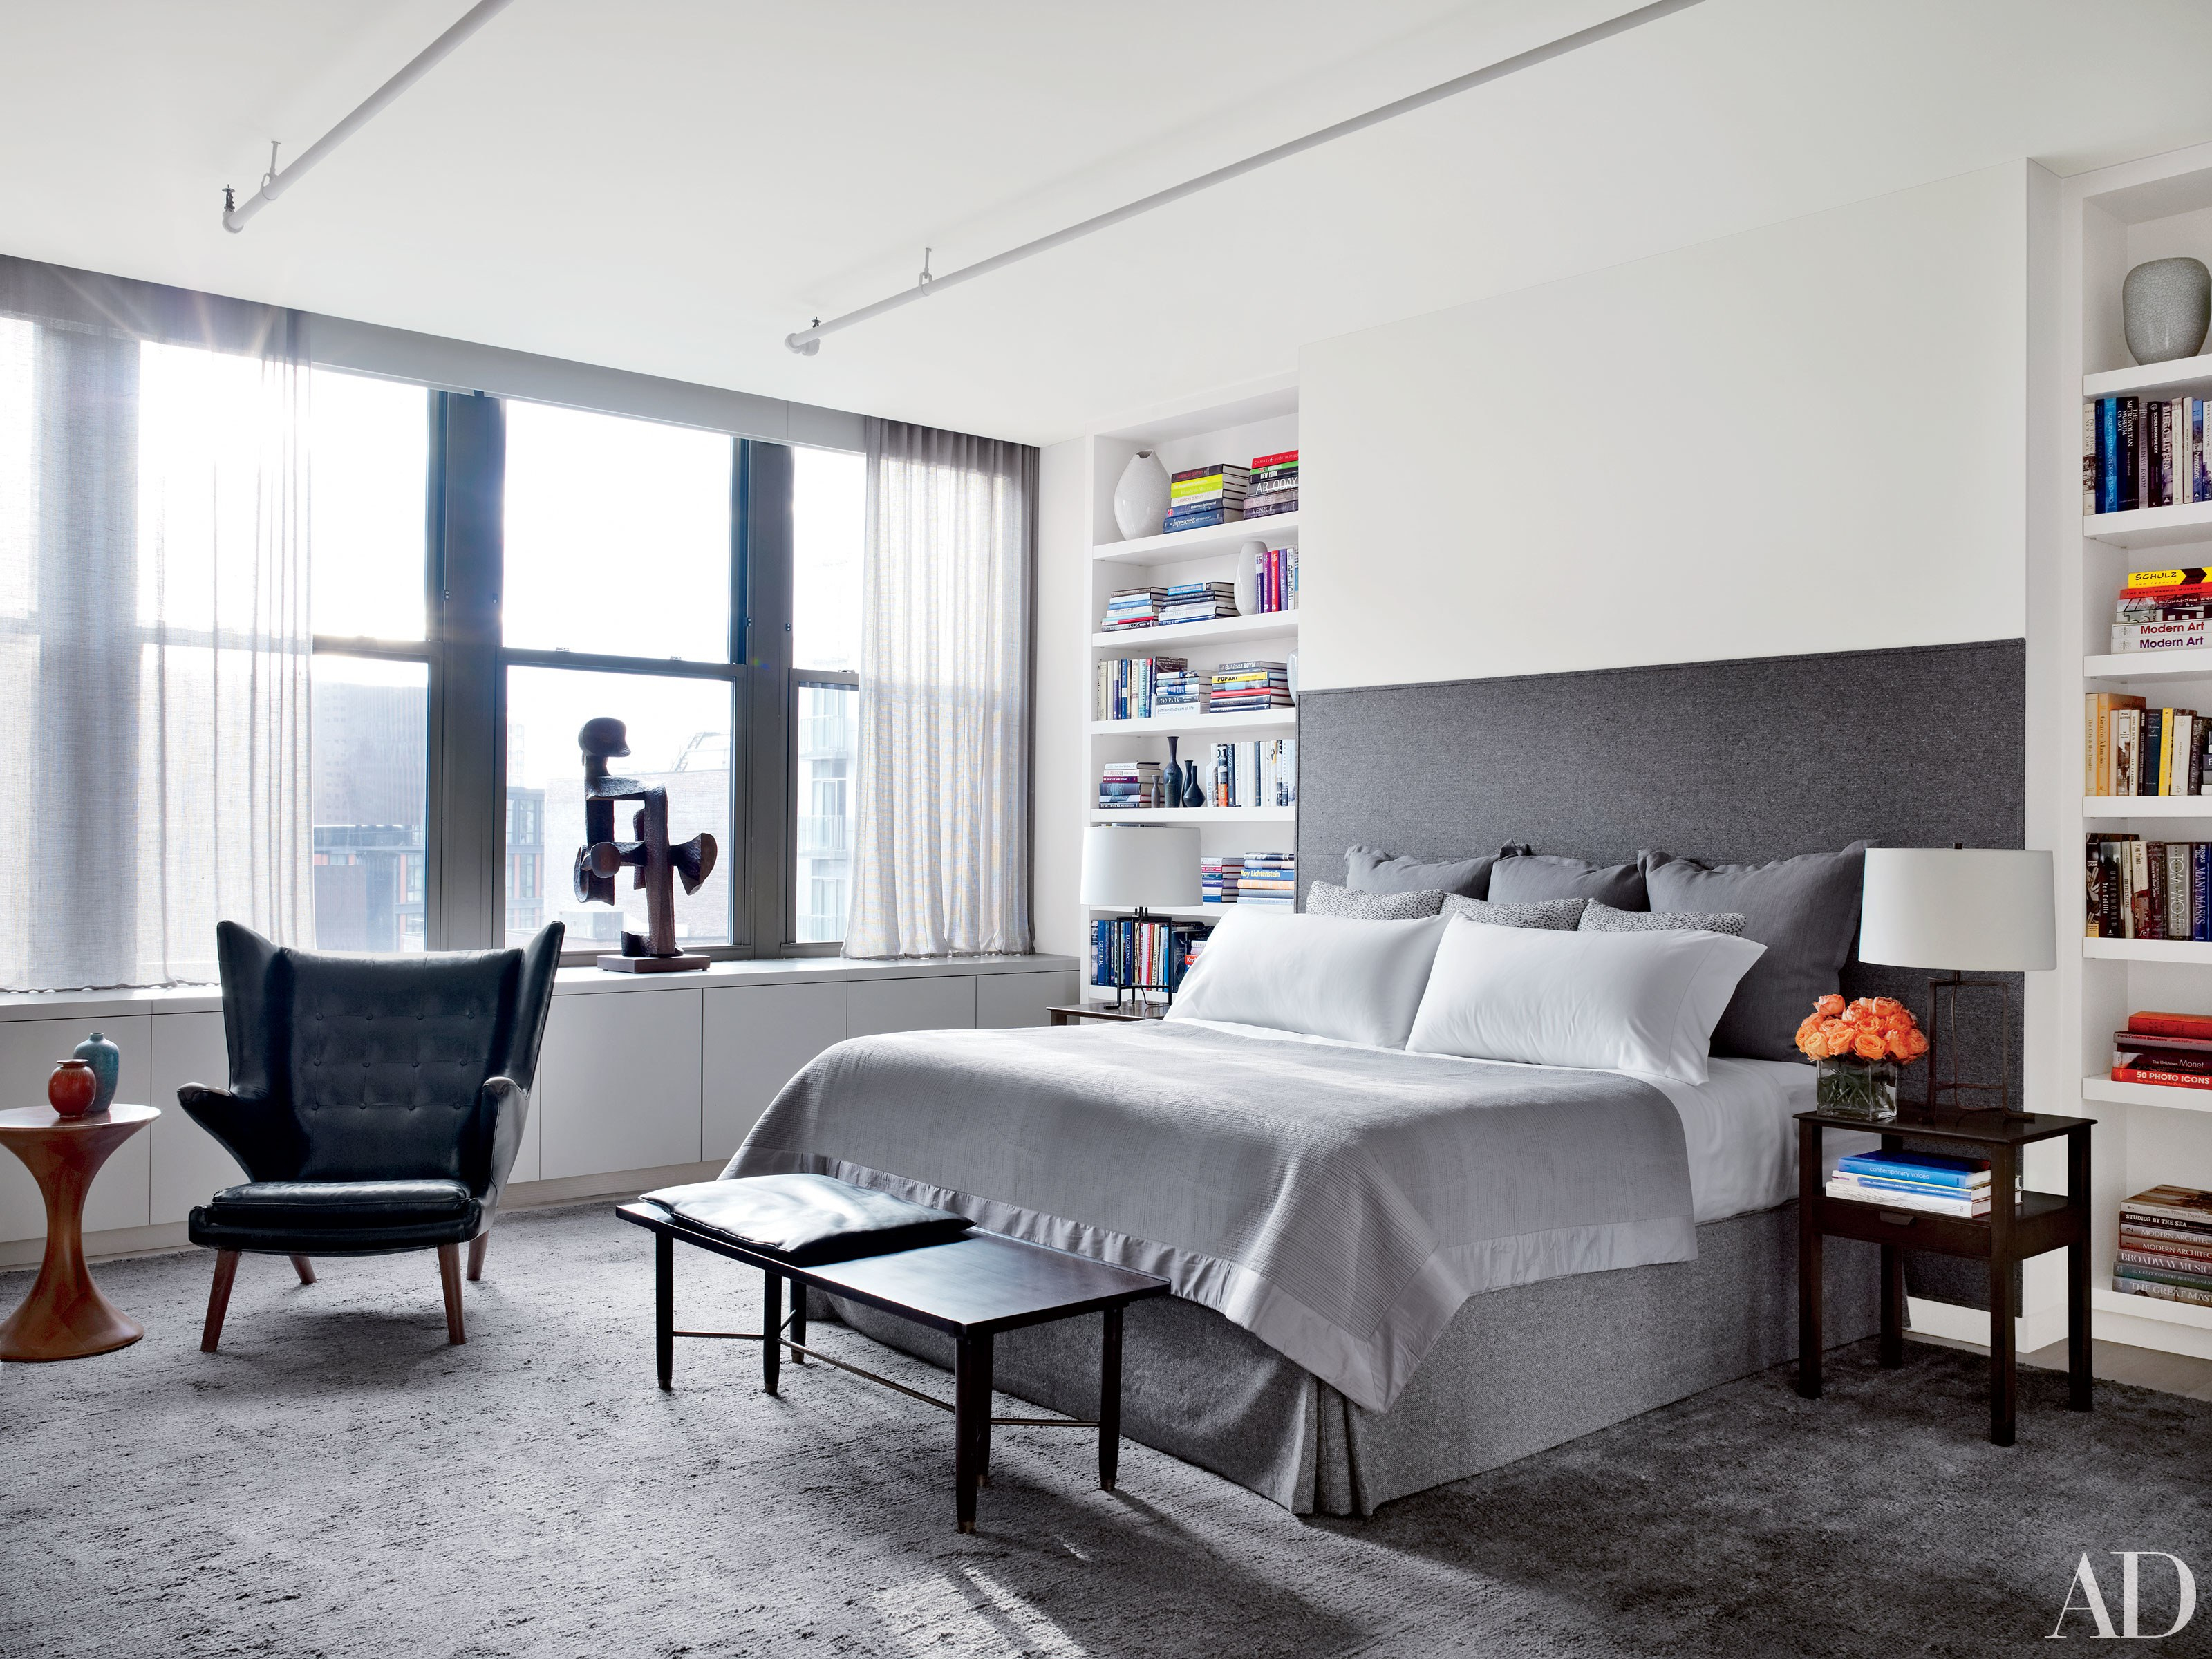 24 Contemporary Bedrooms With Sleek And Serene Style within Modern Bedroom Decorating